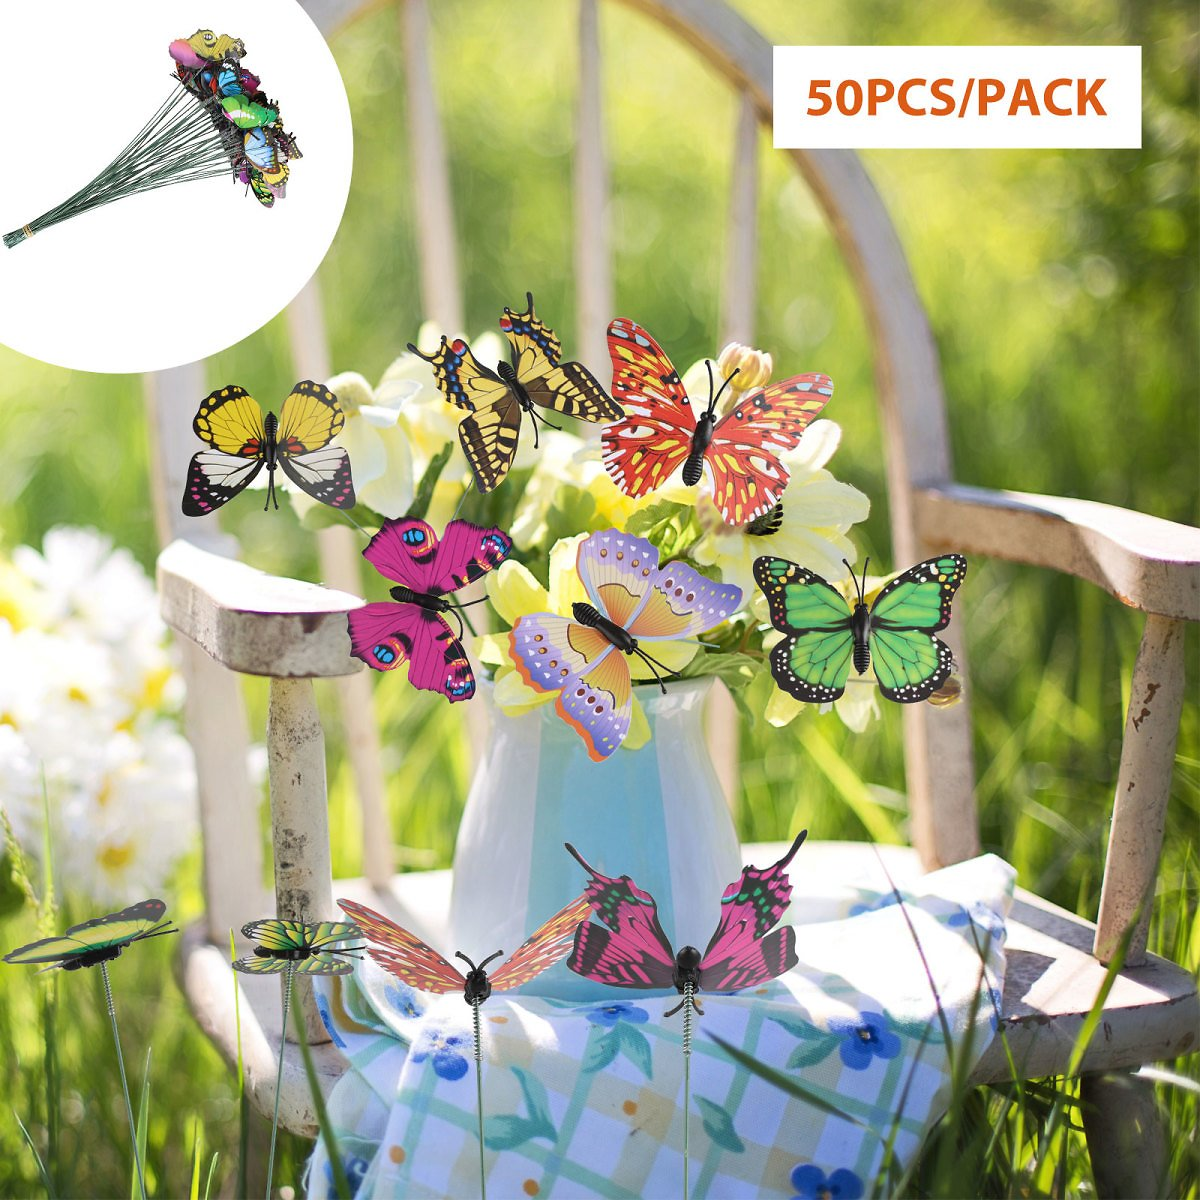 50Pcs Butterfly Stakes, PVC Waterproof Butterflies Stakes Garden Ornaments & Patio Decor Butterfly Party Supplies Yard Stakes Decorative for Outdoor Christmas Decorations